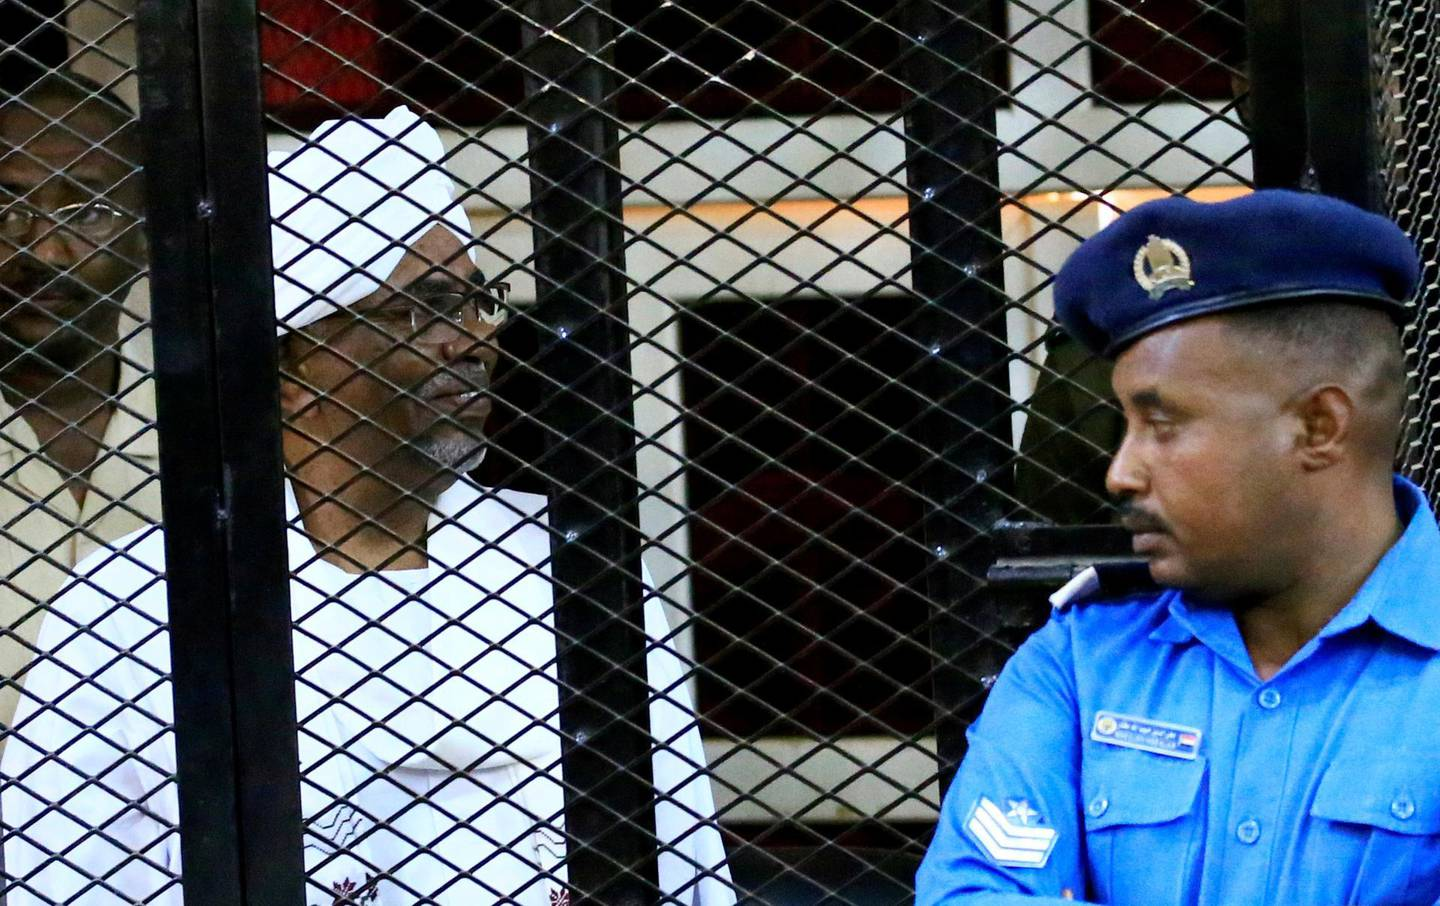 FILE PHOTO: Sudan's former president Omar Hassan al-Bashir sits inside a cage during the hearing of the verdict that convicted him of corruption charges in a court in Khartoum, Sudan, December 14, 2019. REUTERS/Mohamed Nureldin Abdallah/File Photo